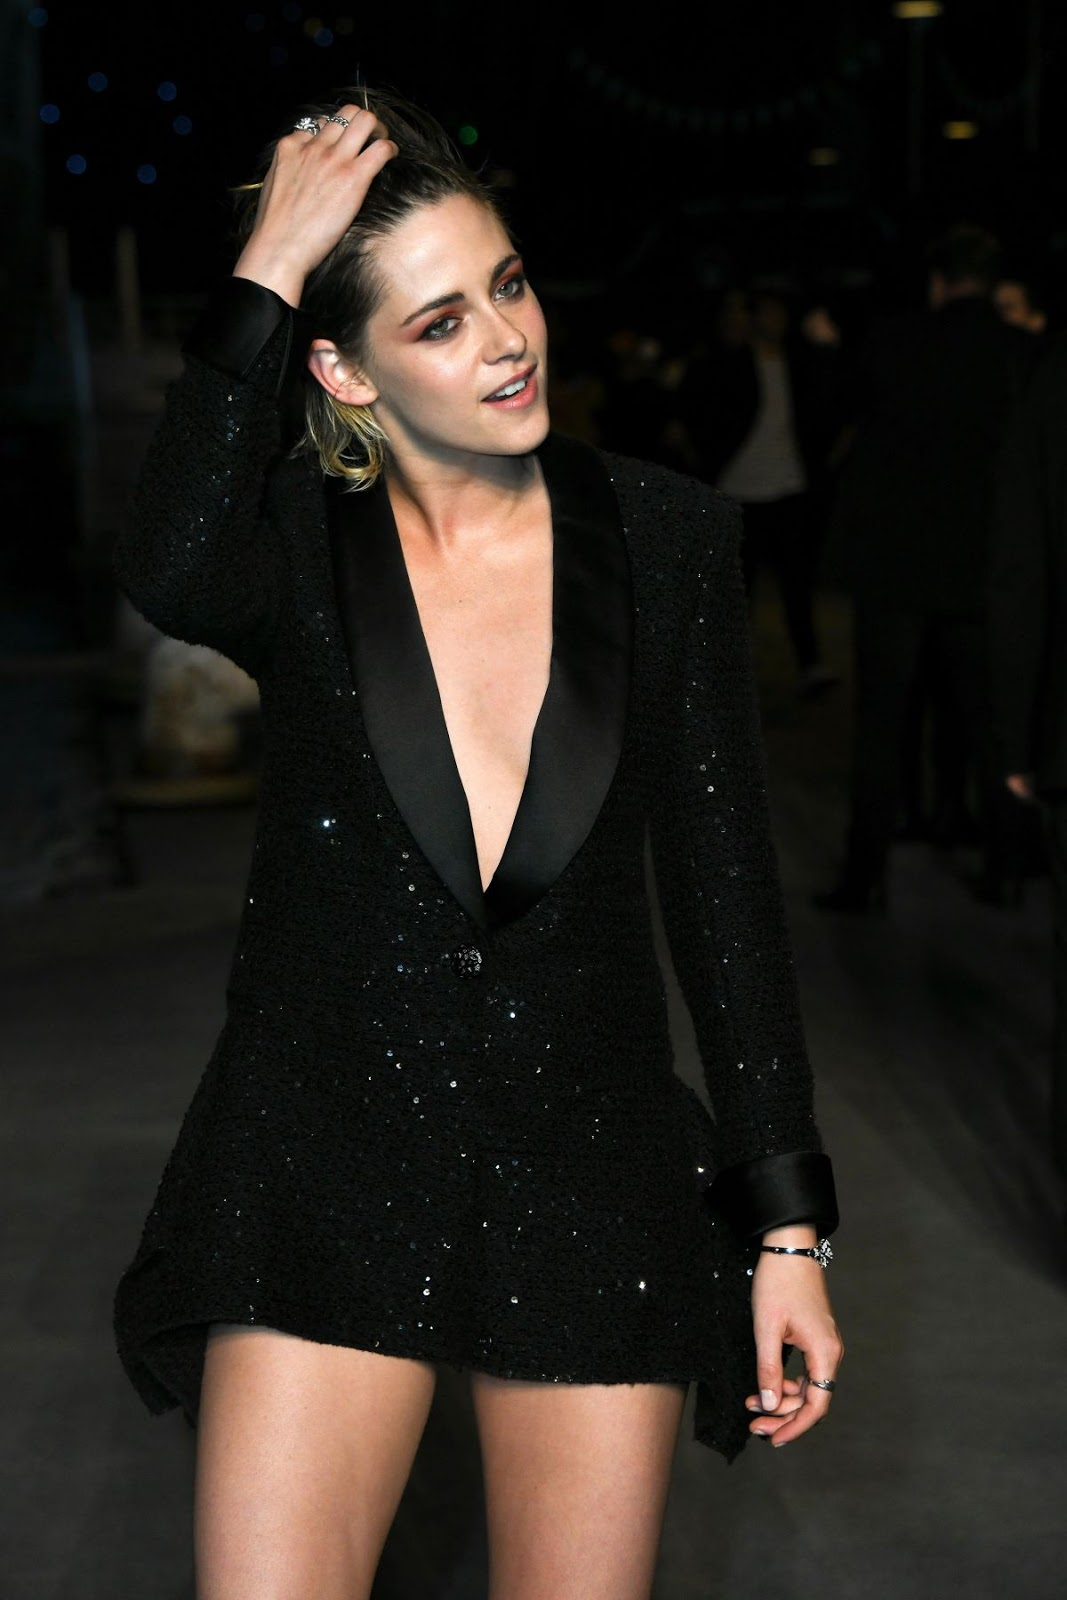 Kristen Stewart at the Chanel cruise 2019 runway show at the Grand Palais in Paris, France